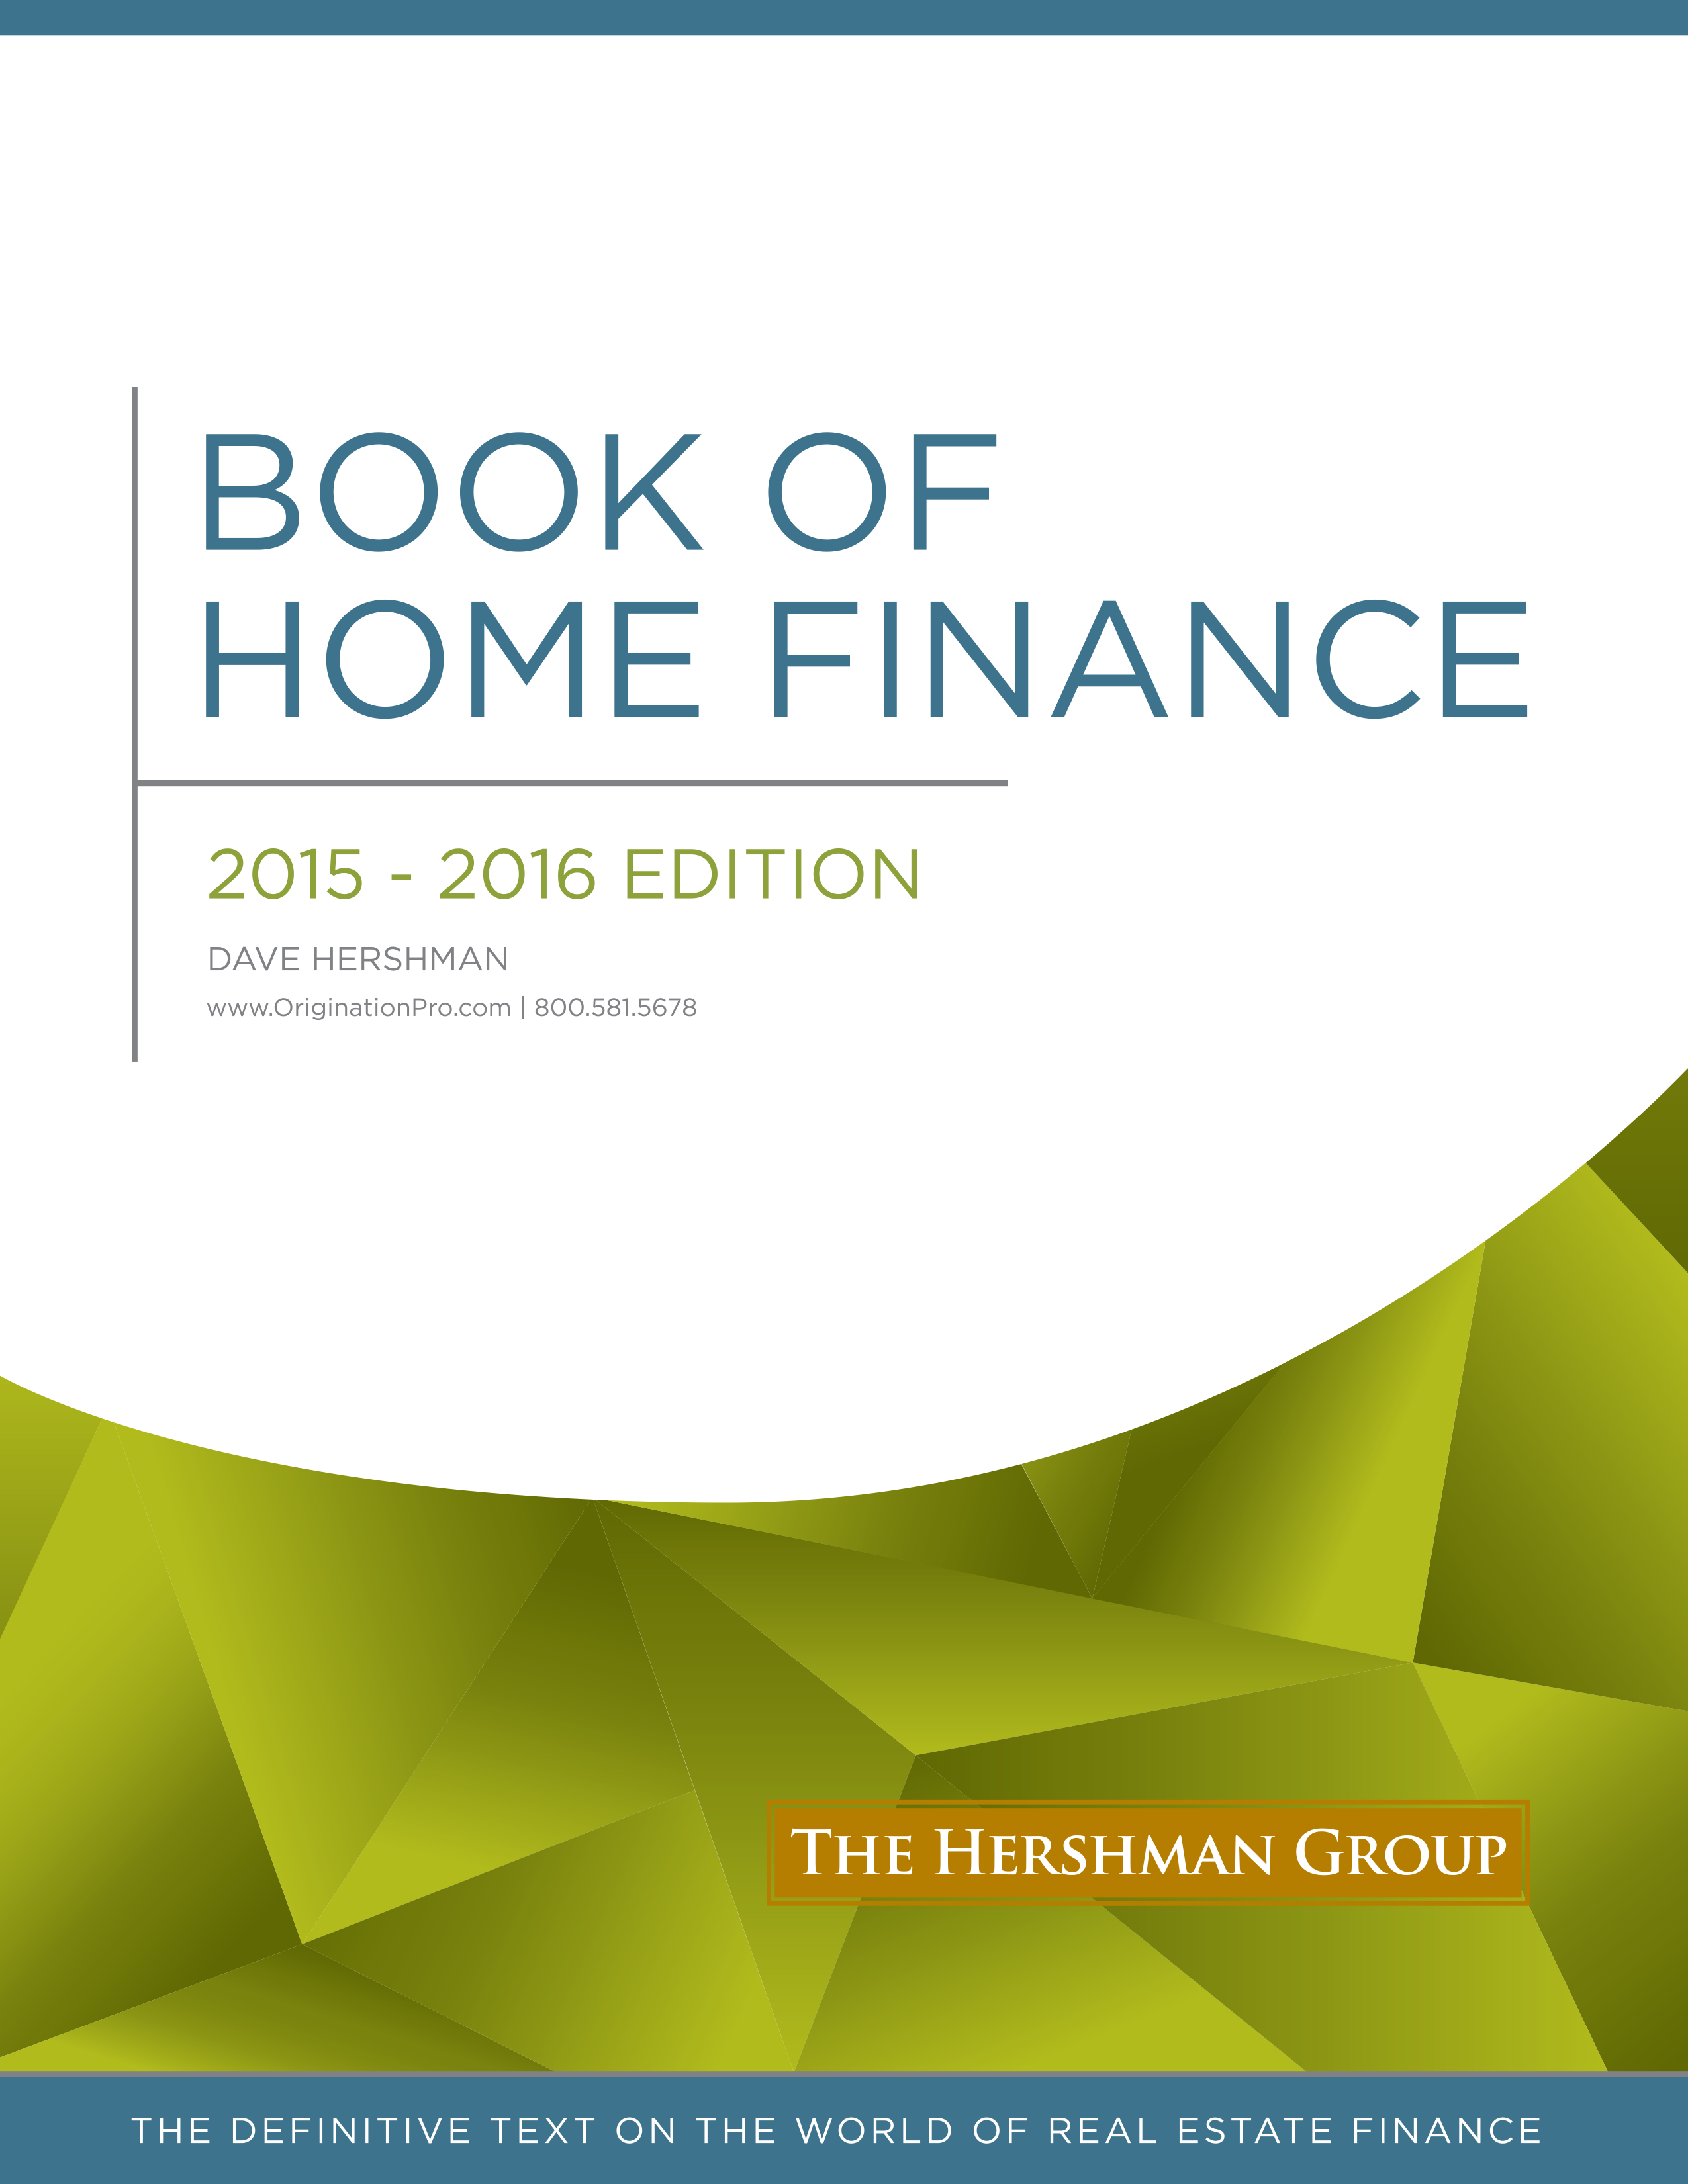 The Book of Home Finance